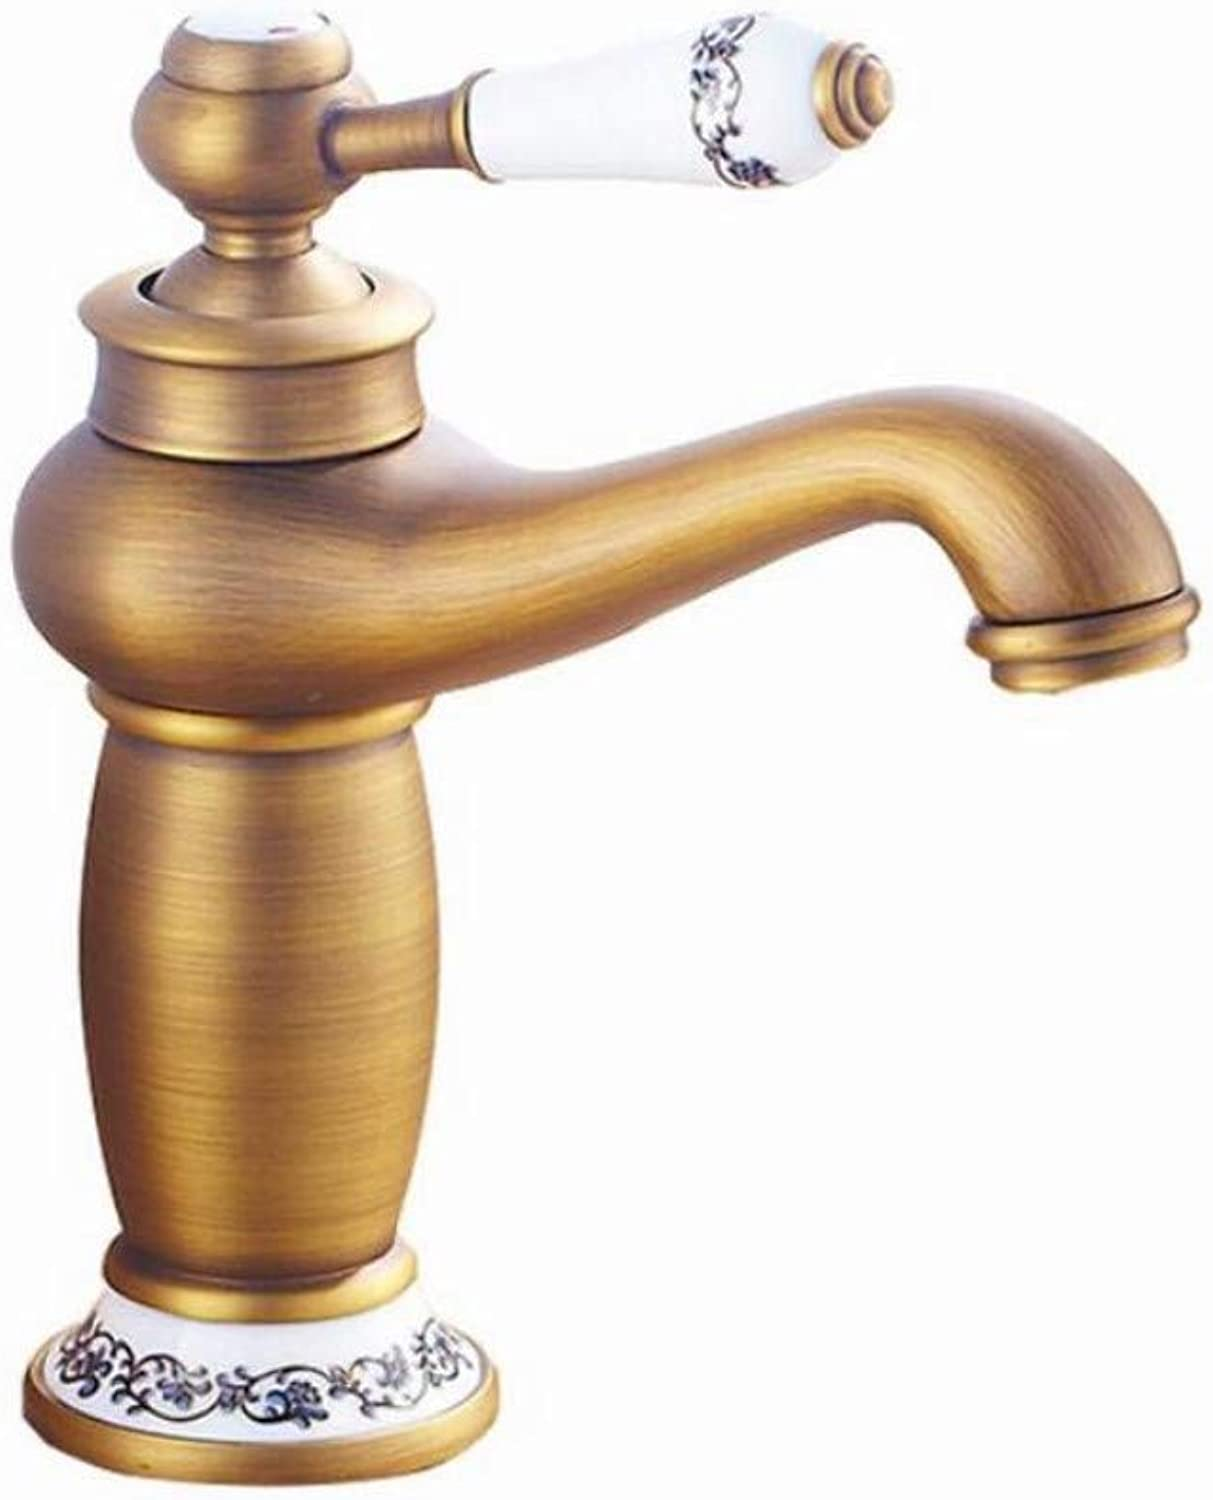 Bathroom Faucet Faucet Hot and Cold Double Open Basin Copper Faucet